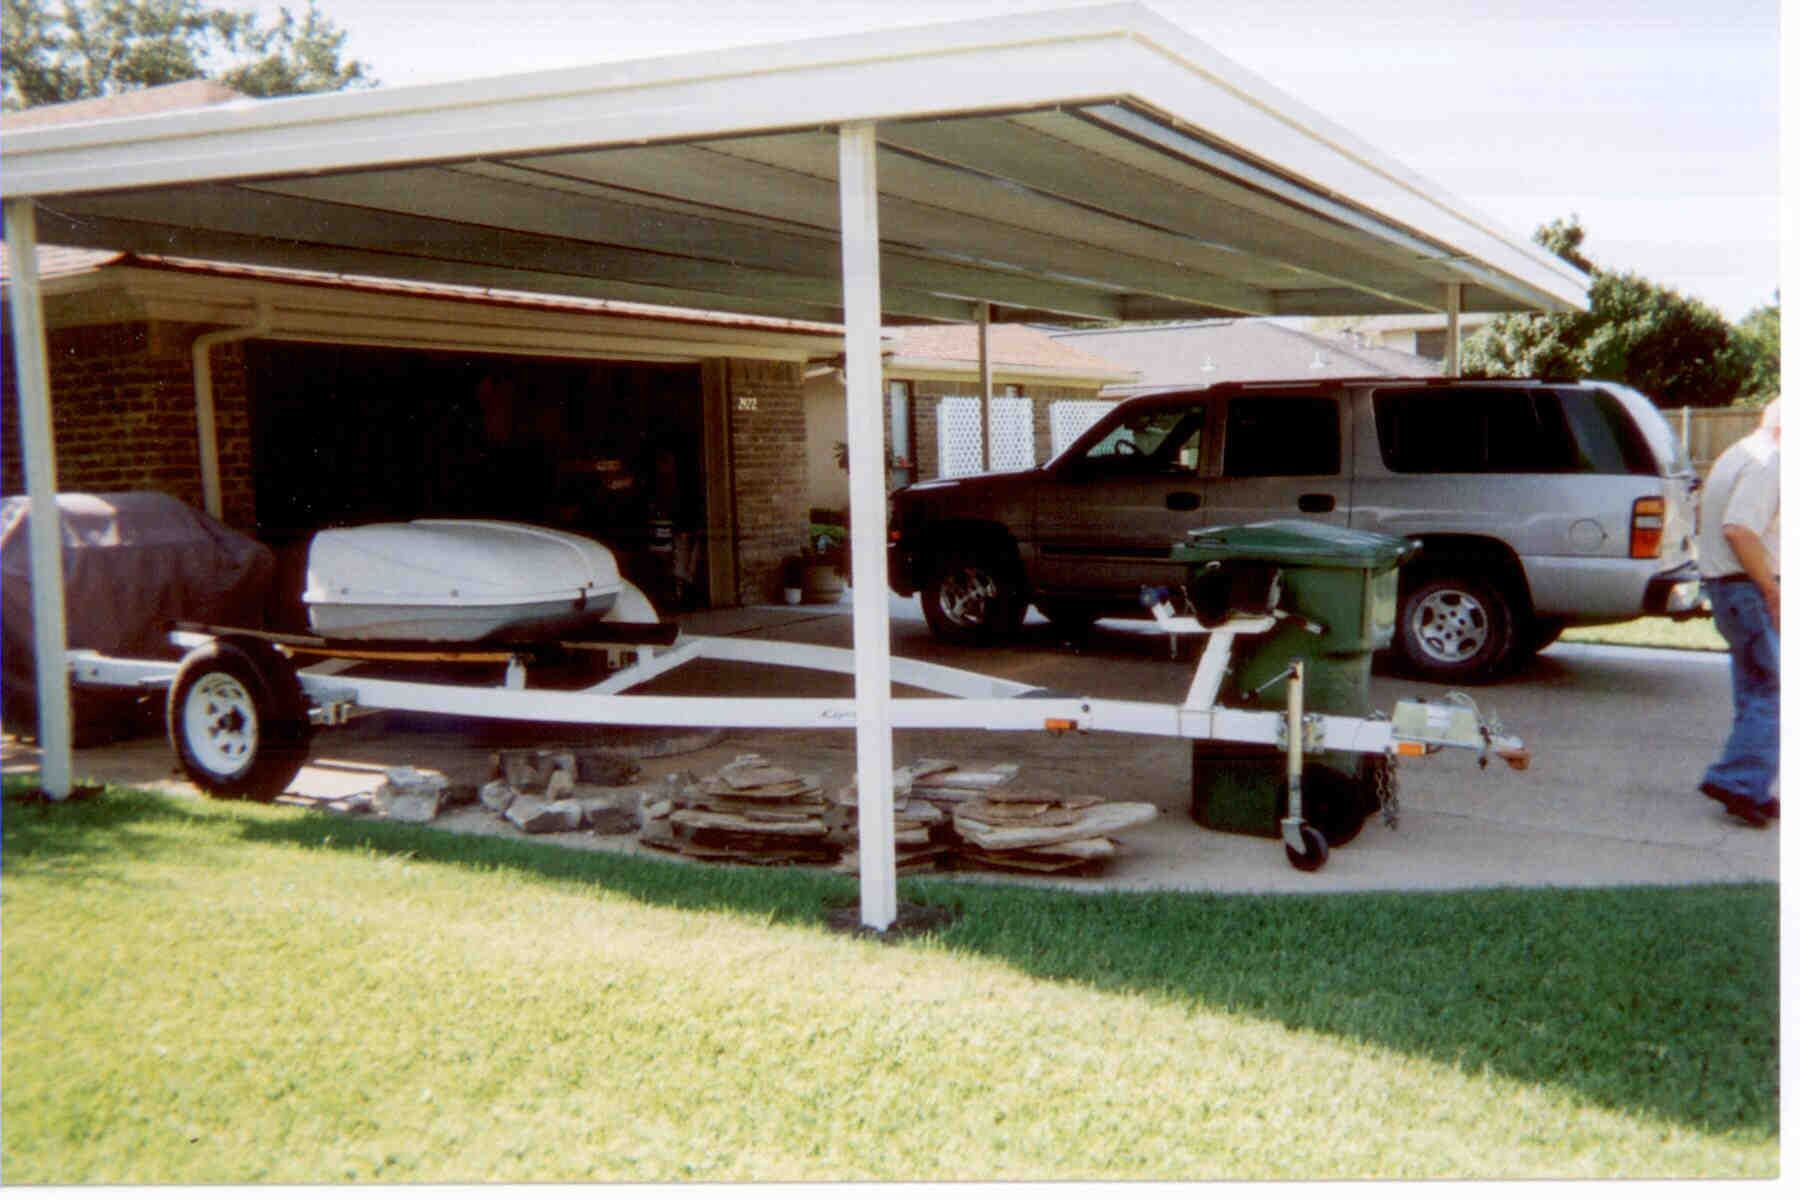 Carport for Boats & Trailers